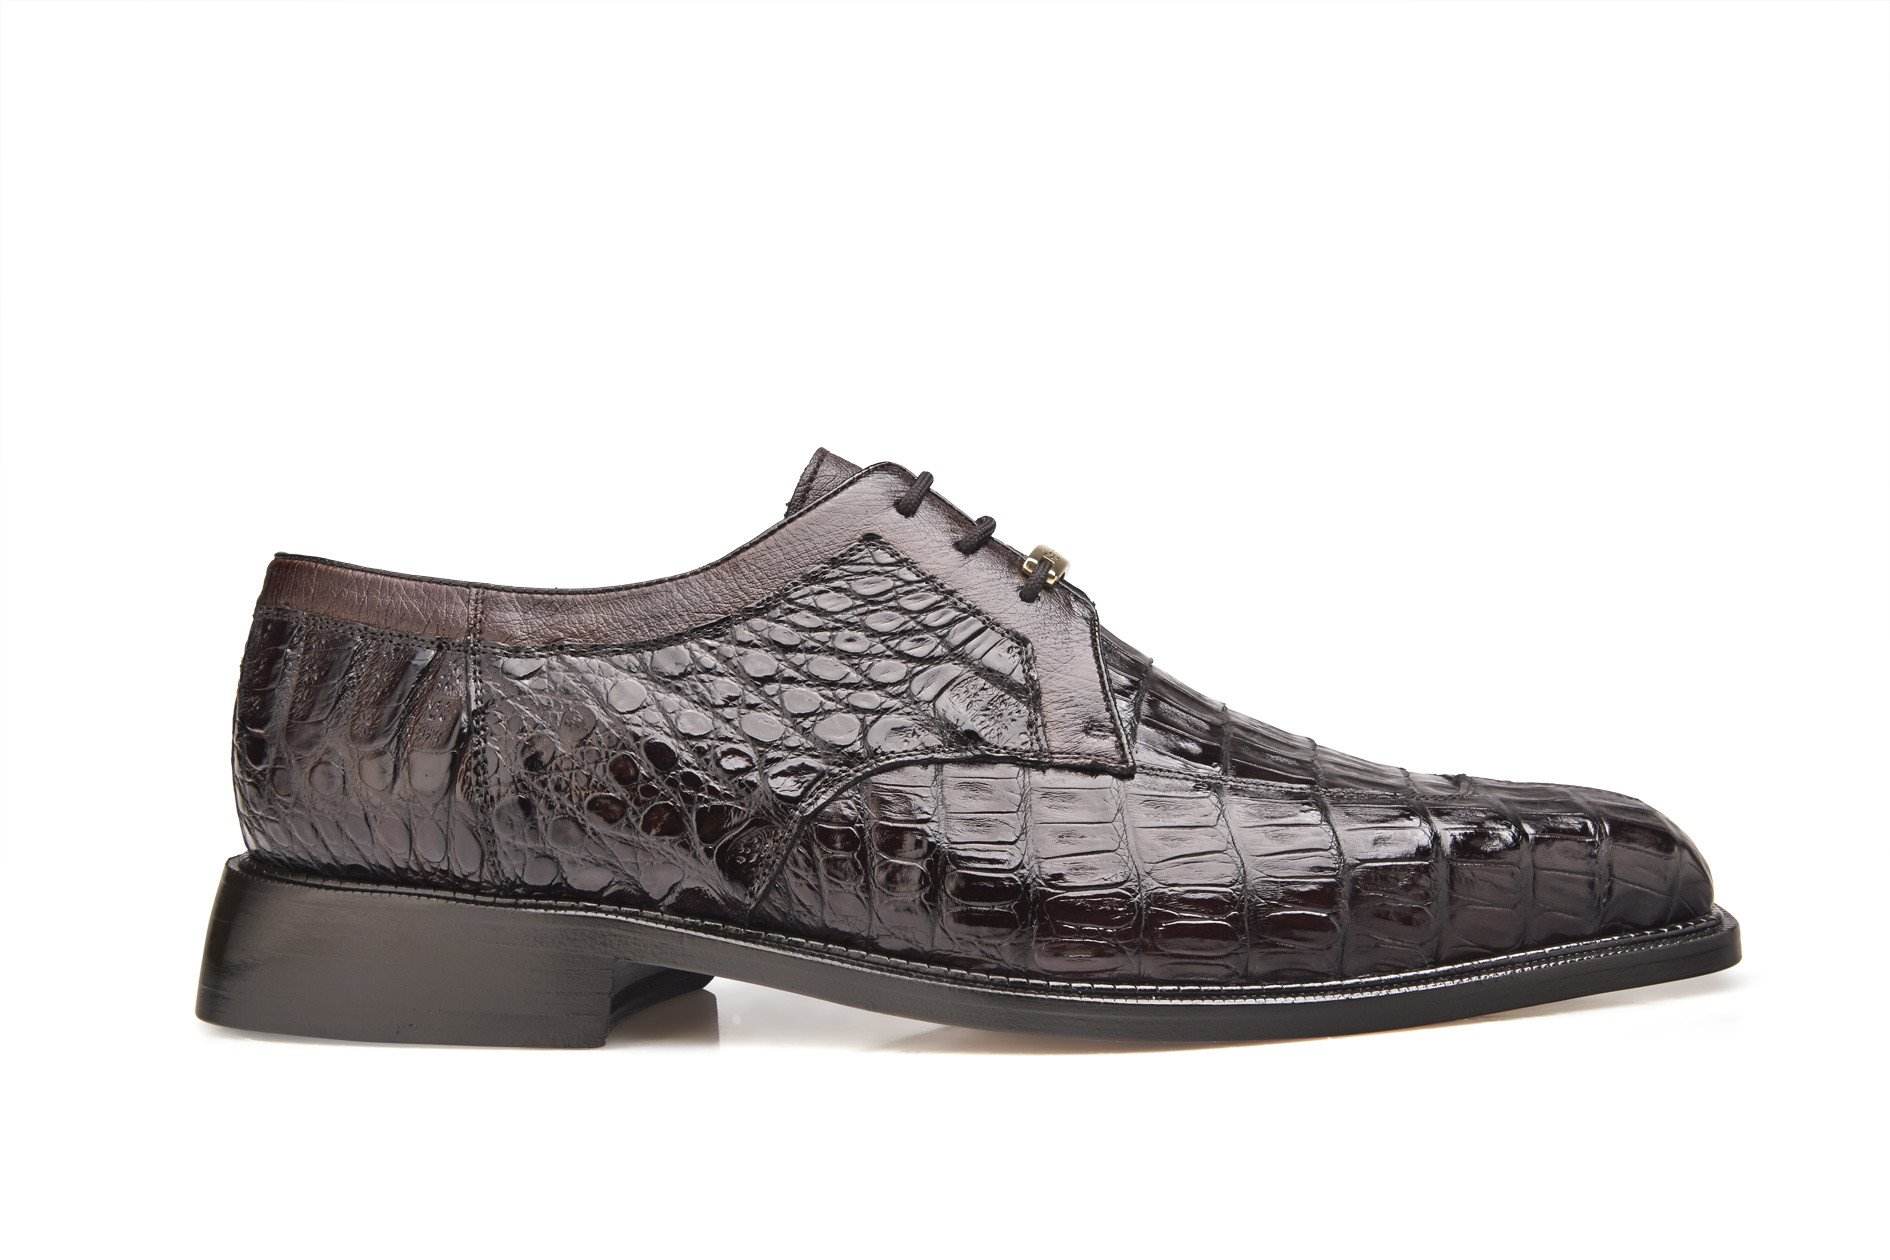 Belvedere Men's Susa Exotic Shoes (10.5M, Brown)